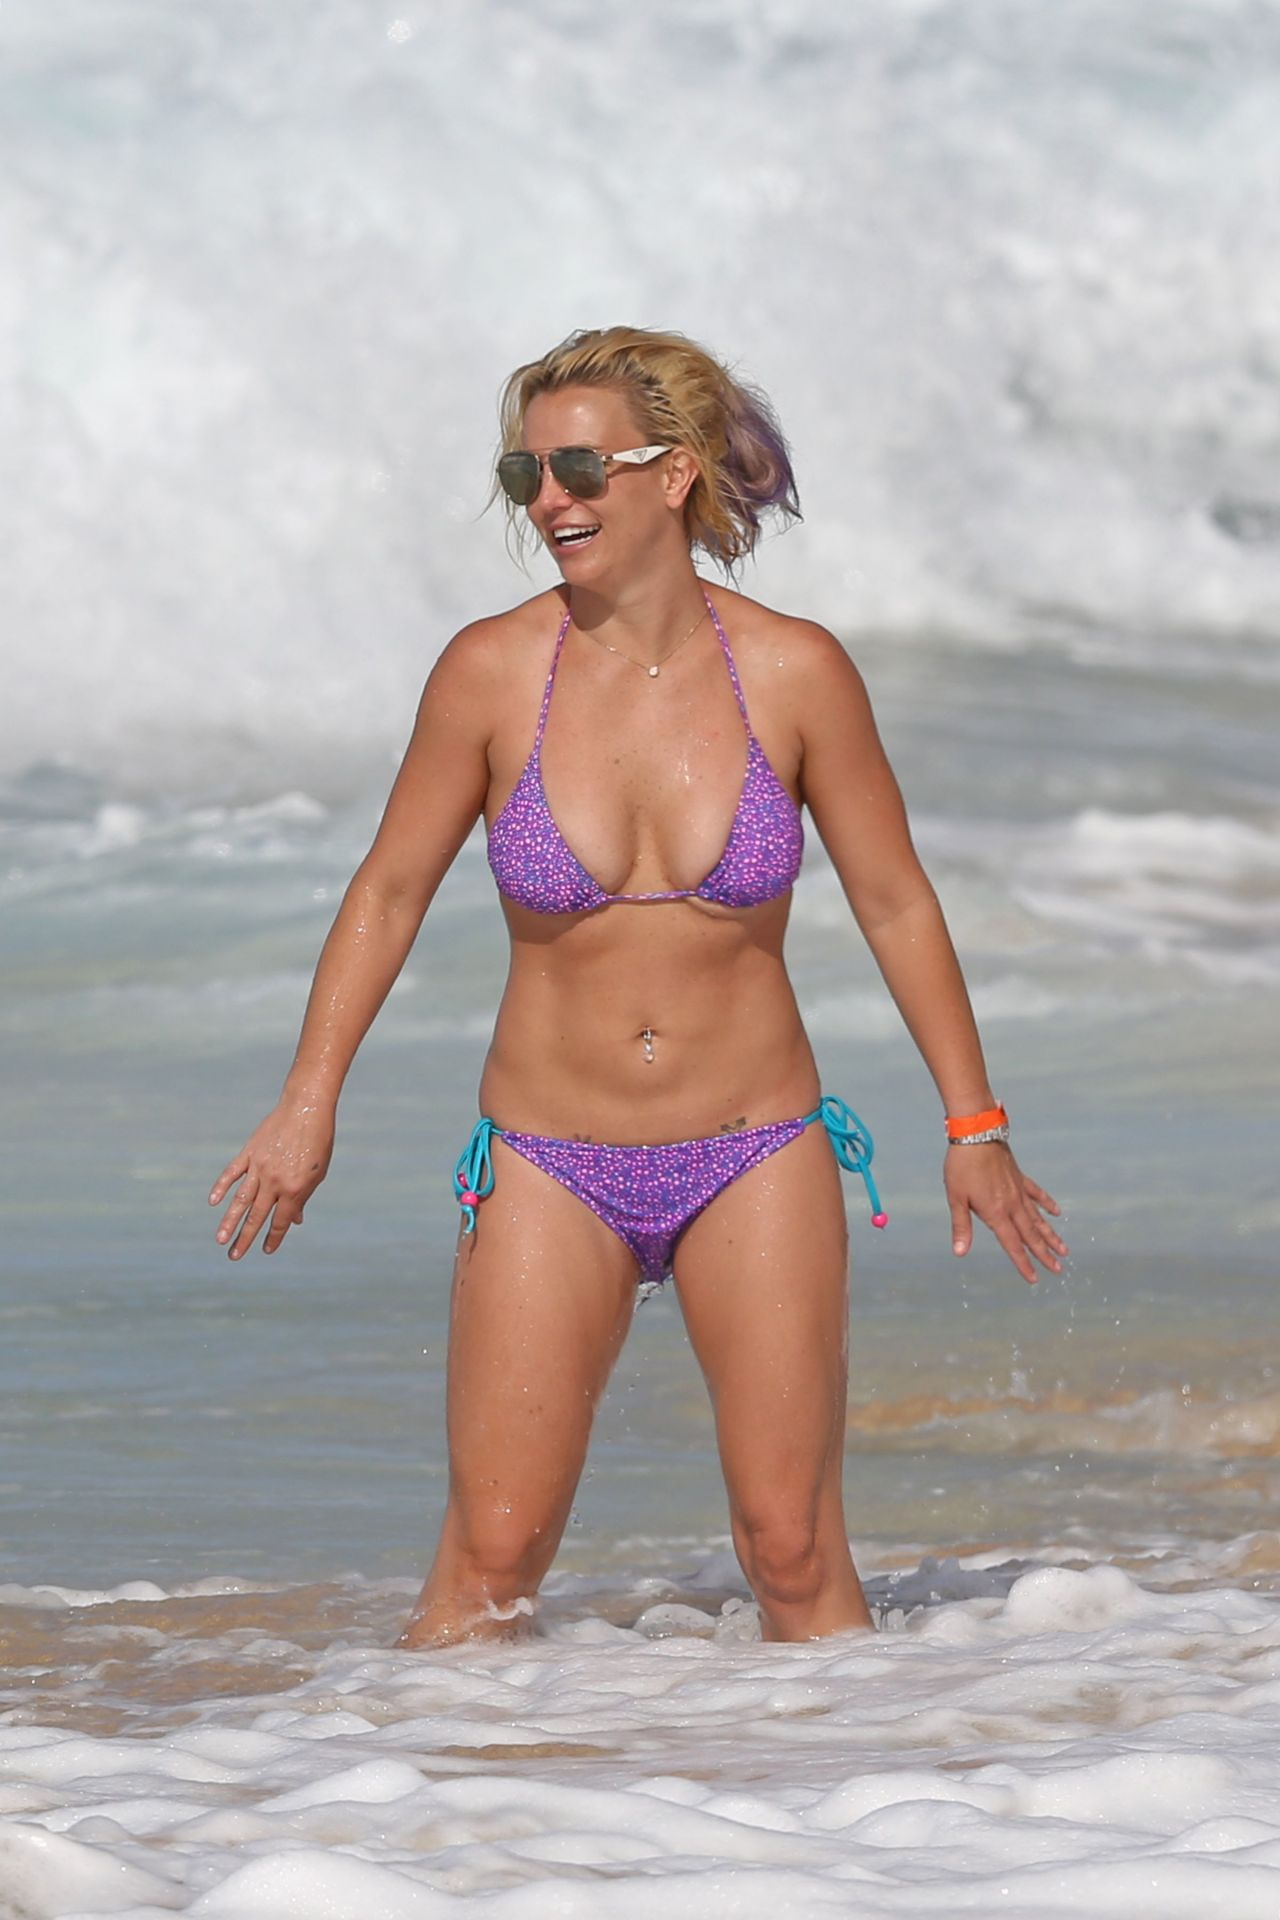 Britney spears naked beach touching words